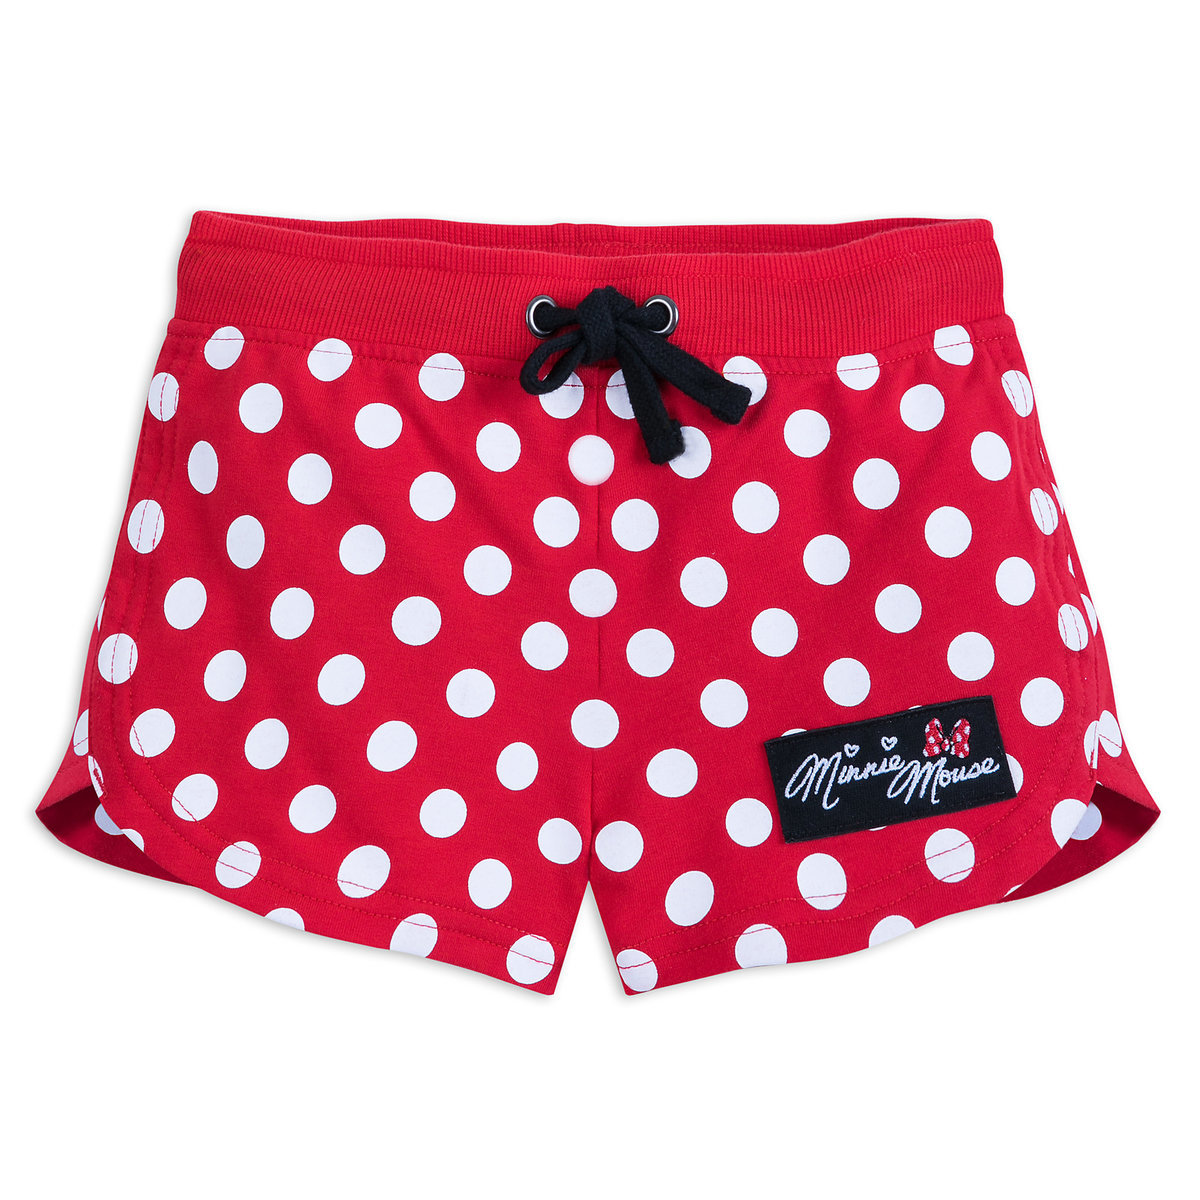 873c6fbed1 Product Image of Minnie Mouse Polka Dot Shorts for Girls # 1